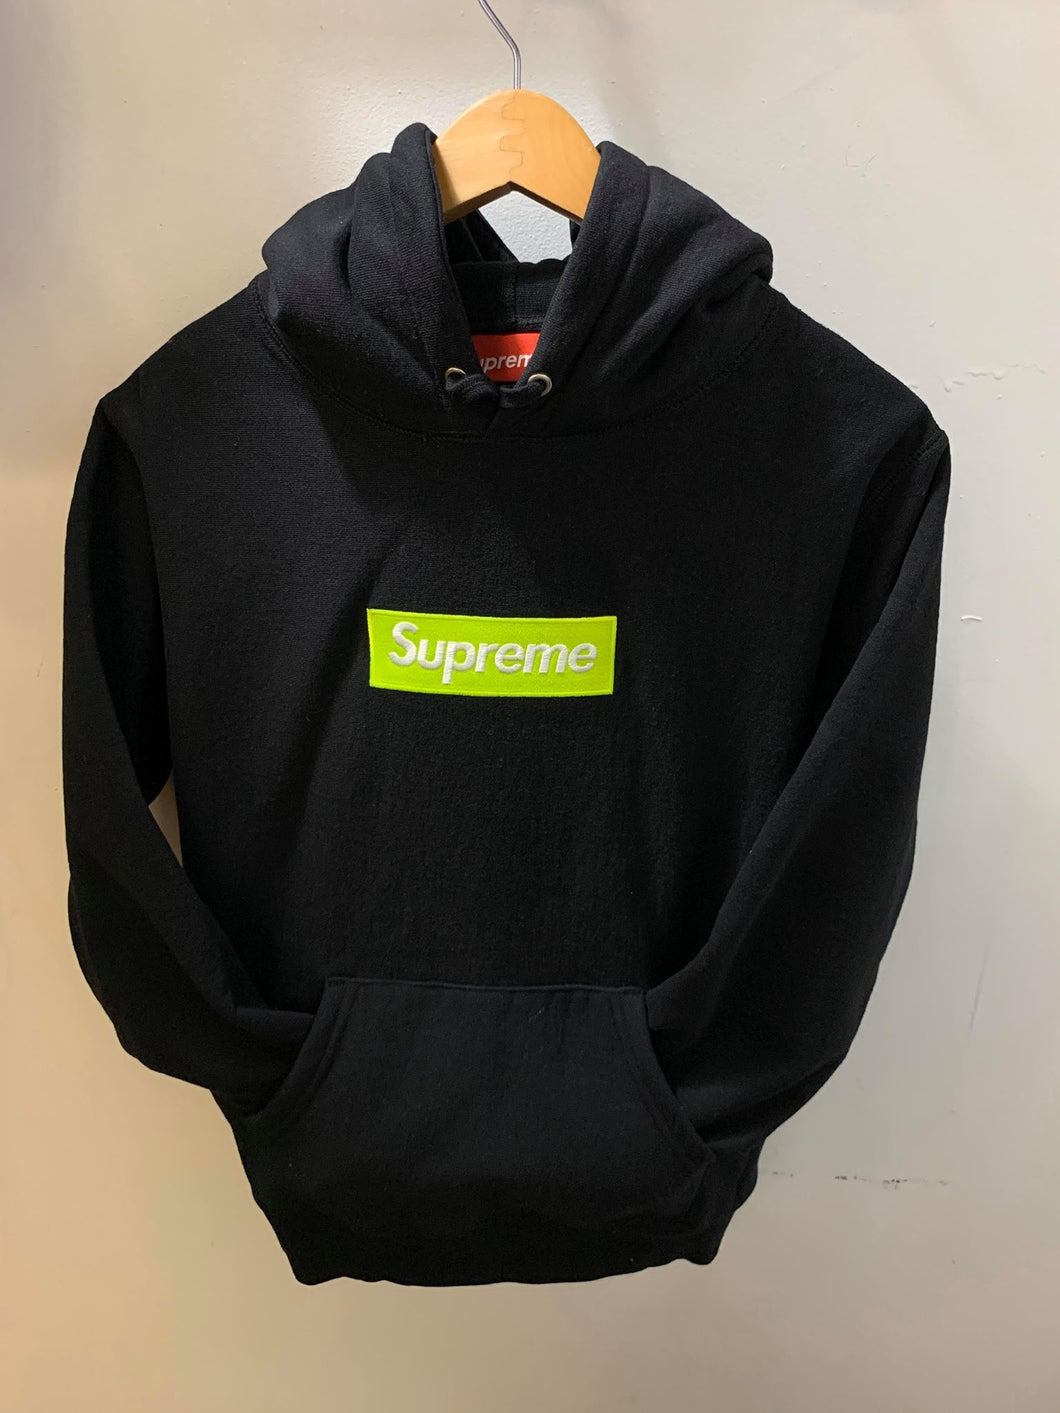 Supreme FW17 Lime Green on Black Hoodie